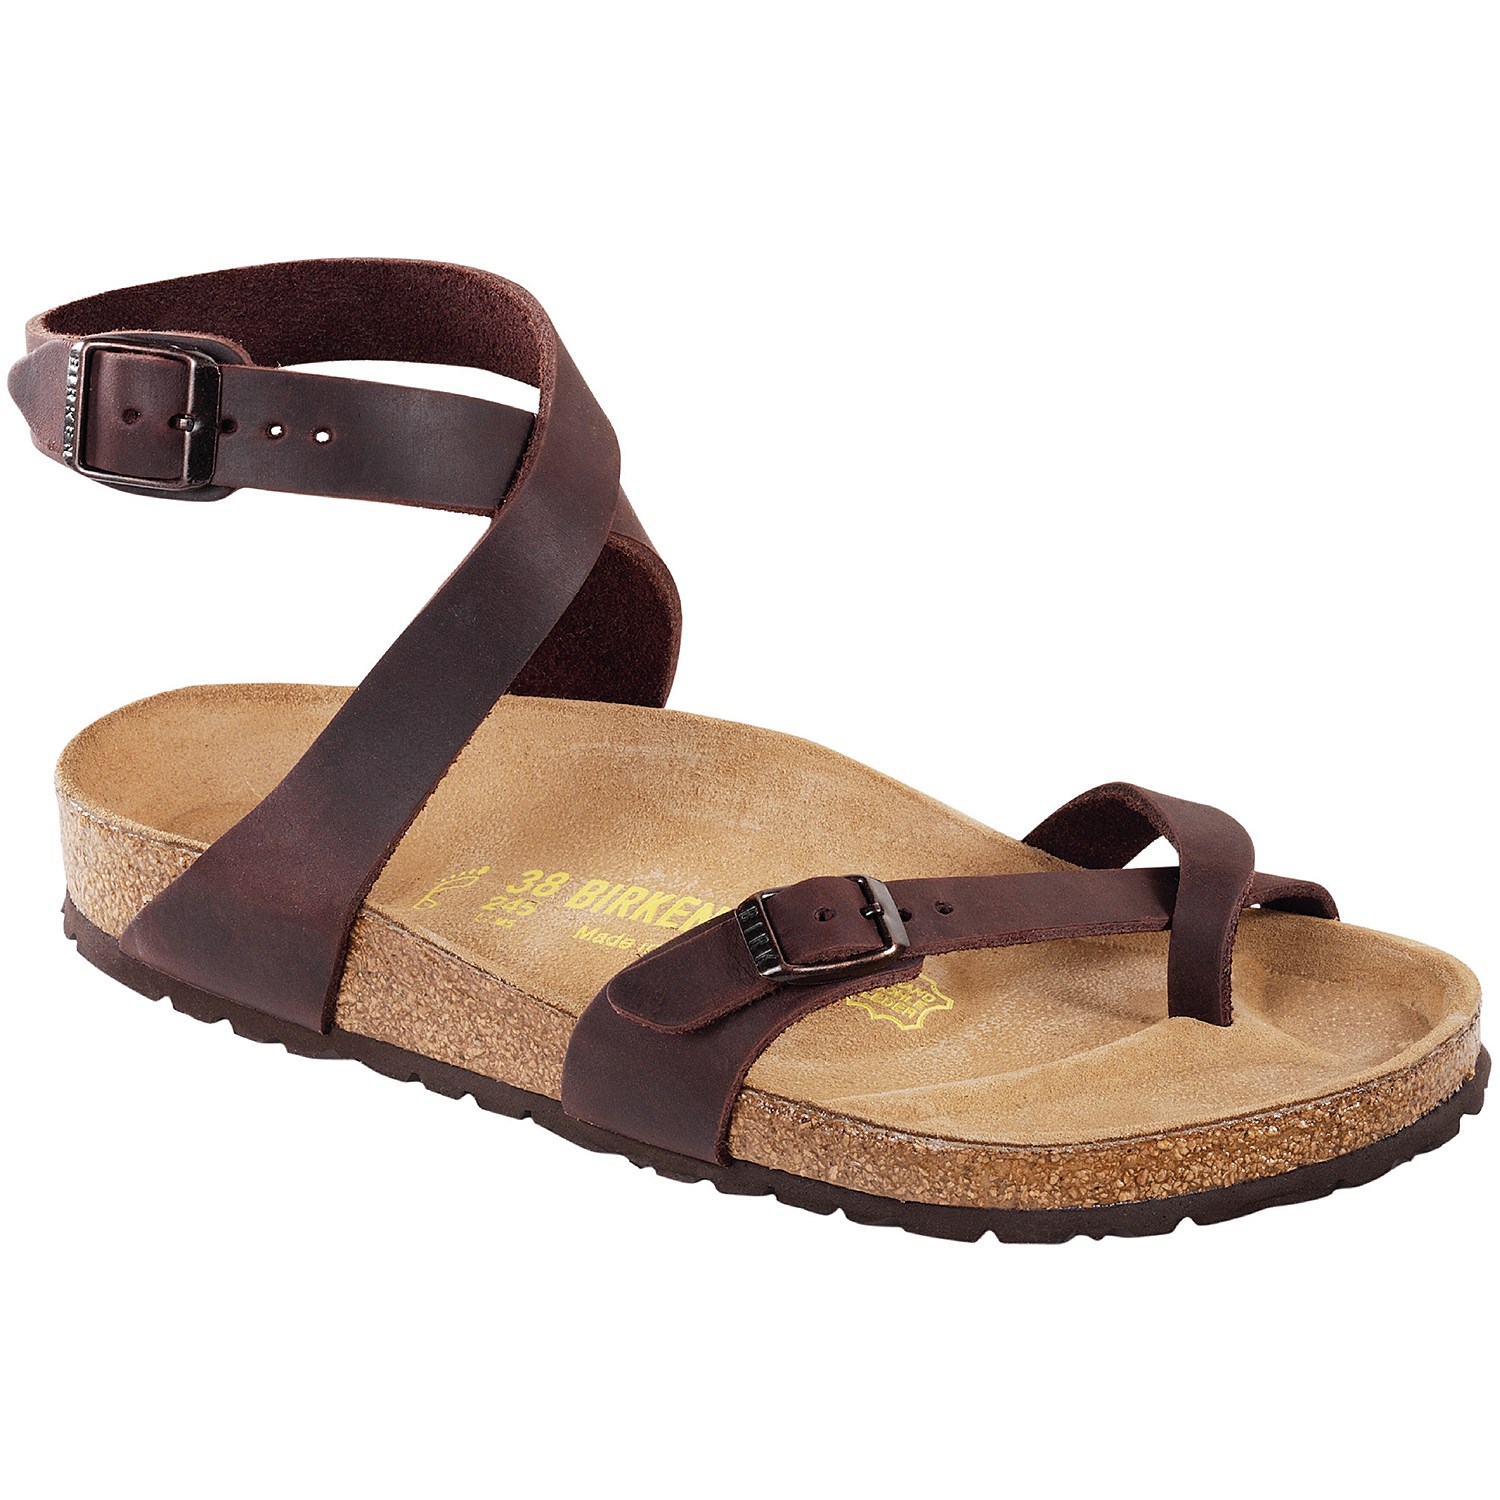 sale on birkenstock womens sandals